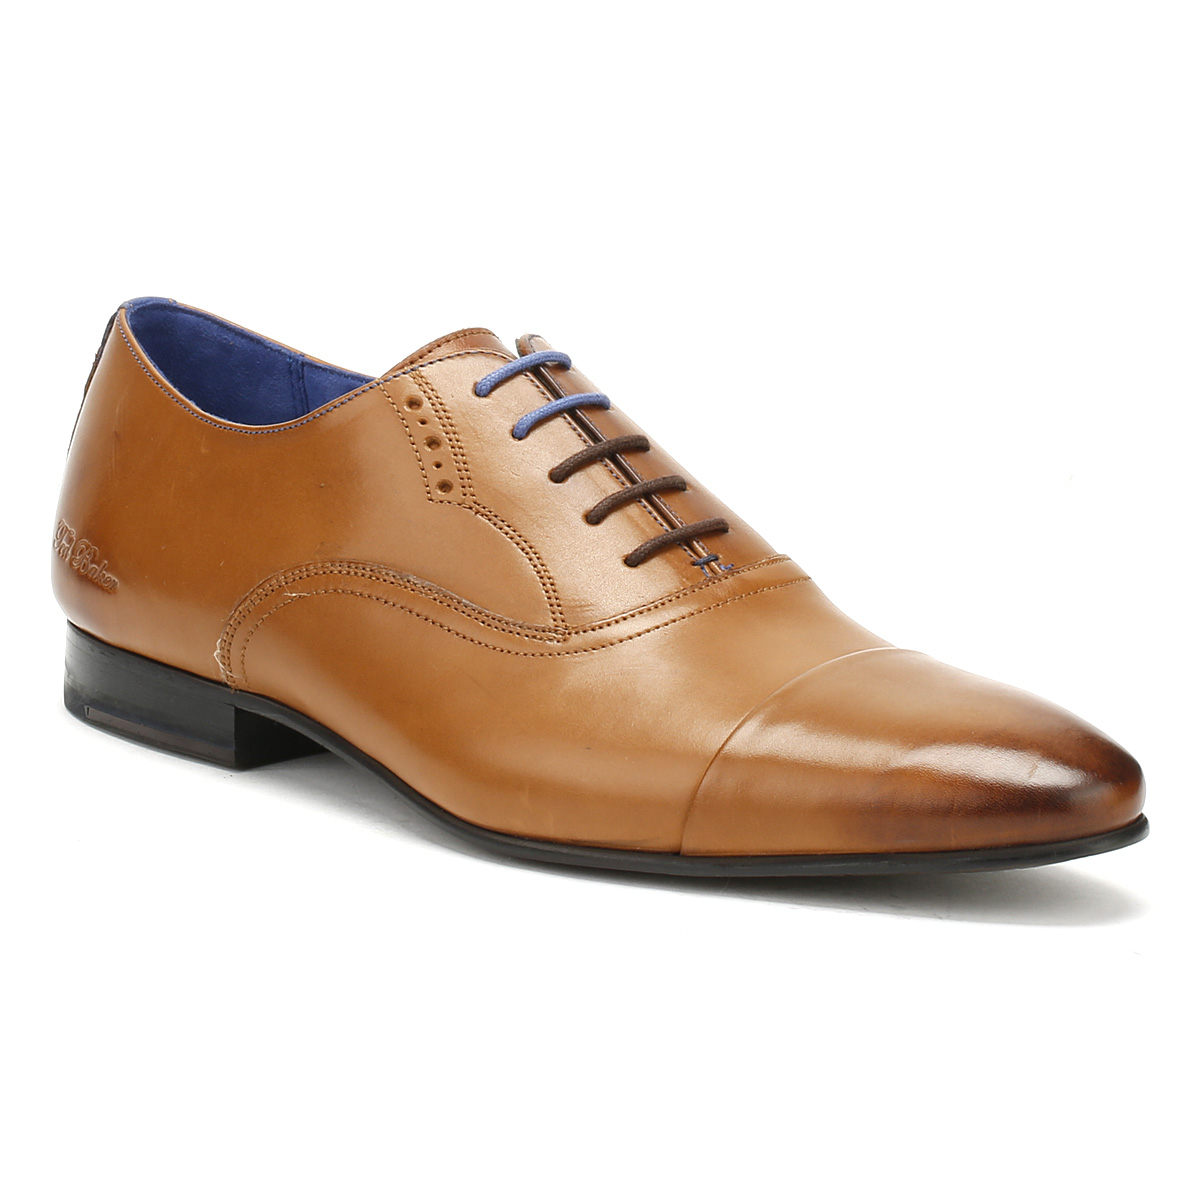 Ted Brown Baker Mens Murain Formal Shoes Tan Brown Ted Leather Lace Up Smarts b6553e